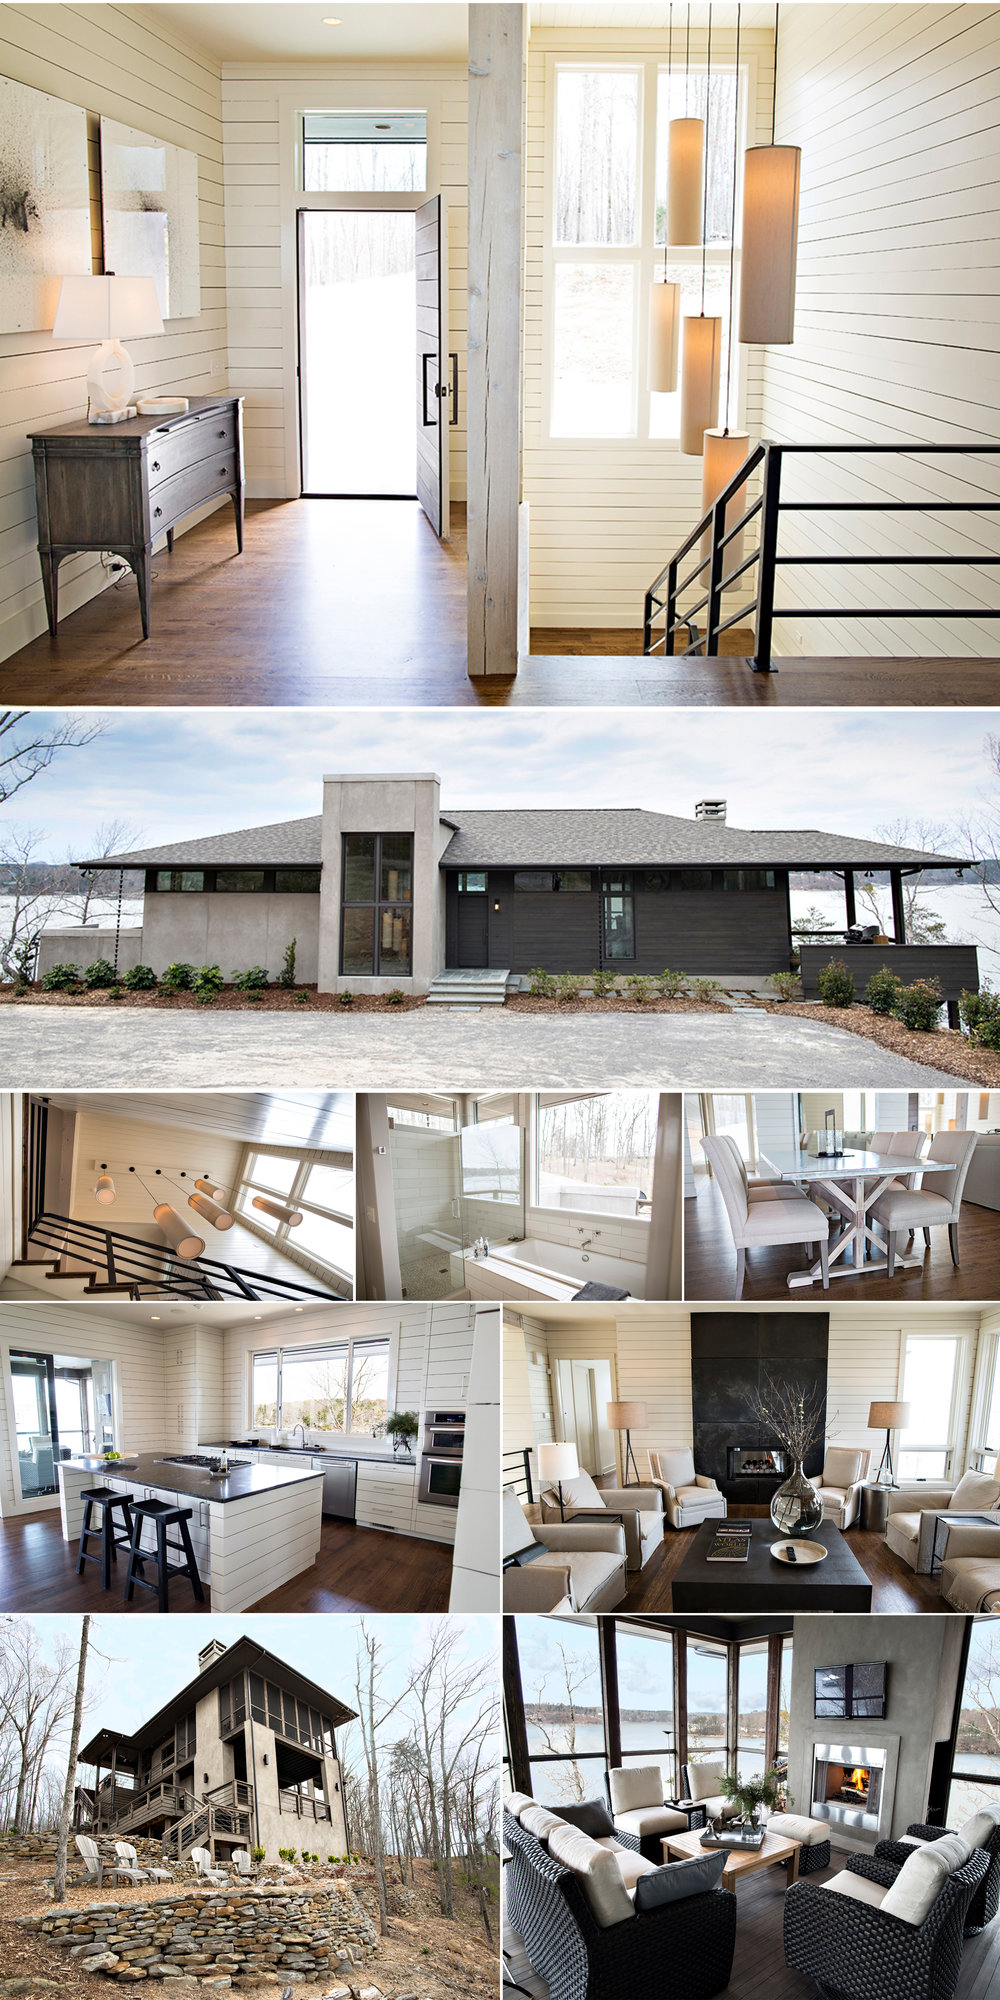 Lake Living collage exterior and interior design architecture Alabama